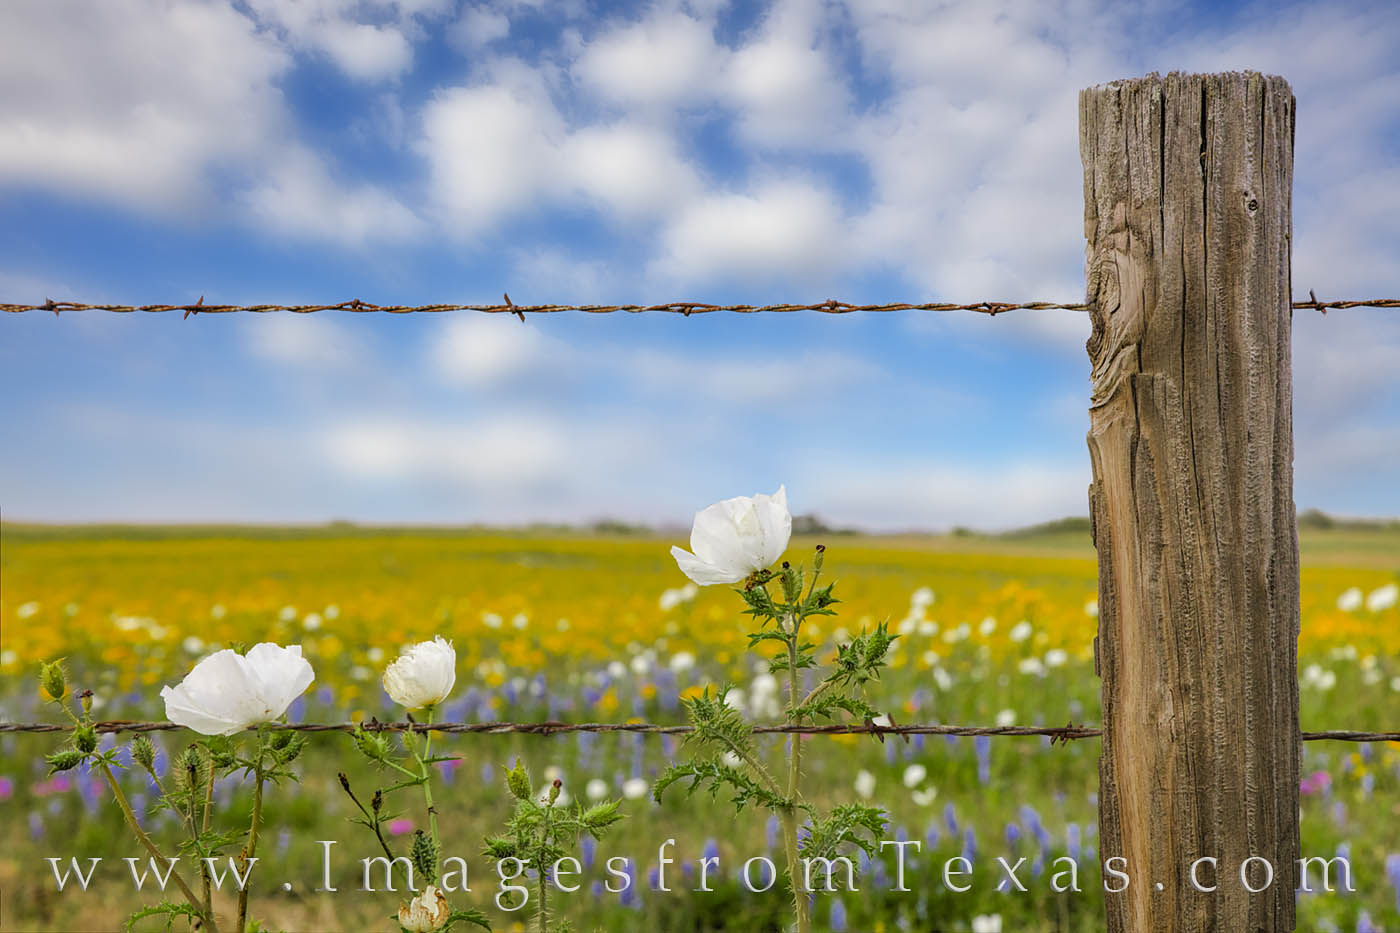 Prickly Poppies float in the afternoon breeze along a wooden post and barbed-wire fence. In the distance, a field of golden groundsel...